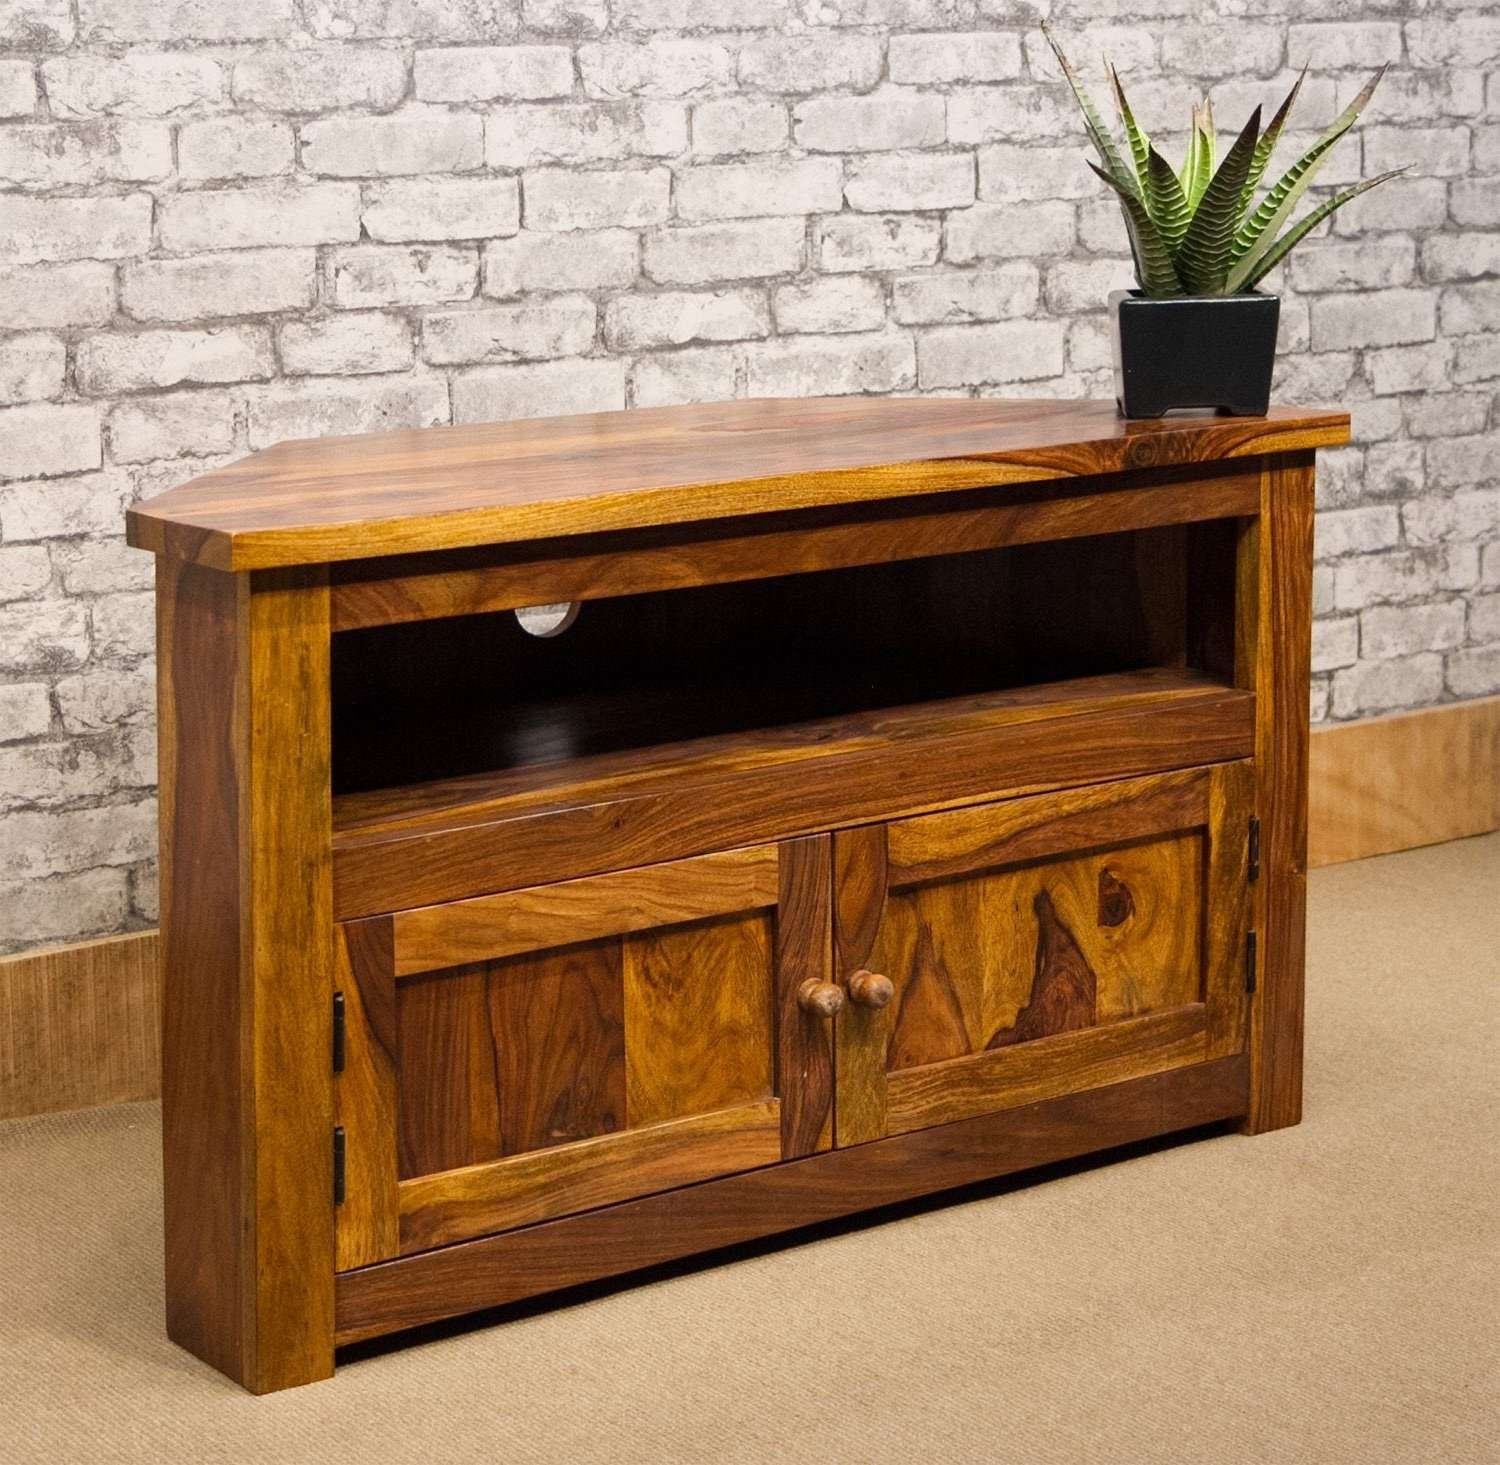 Ibf 013 100cm Corner Tv Stand With Regard To 100cm Tv Stands (View 2 of 15)